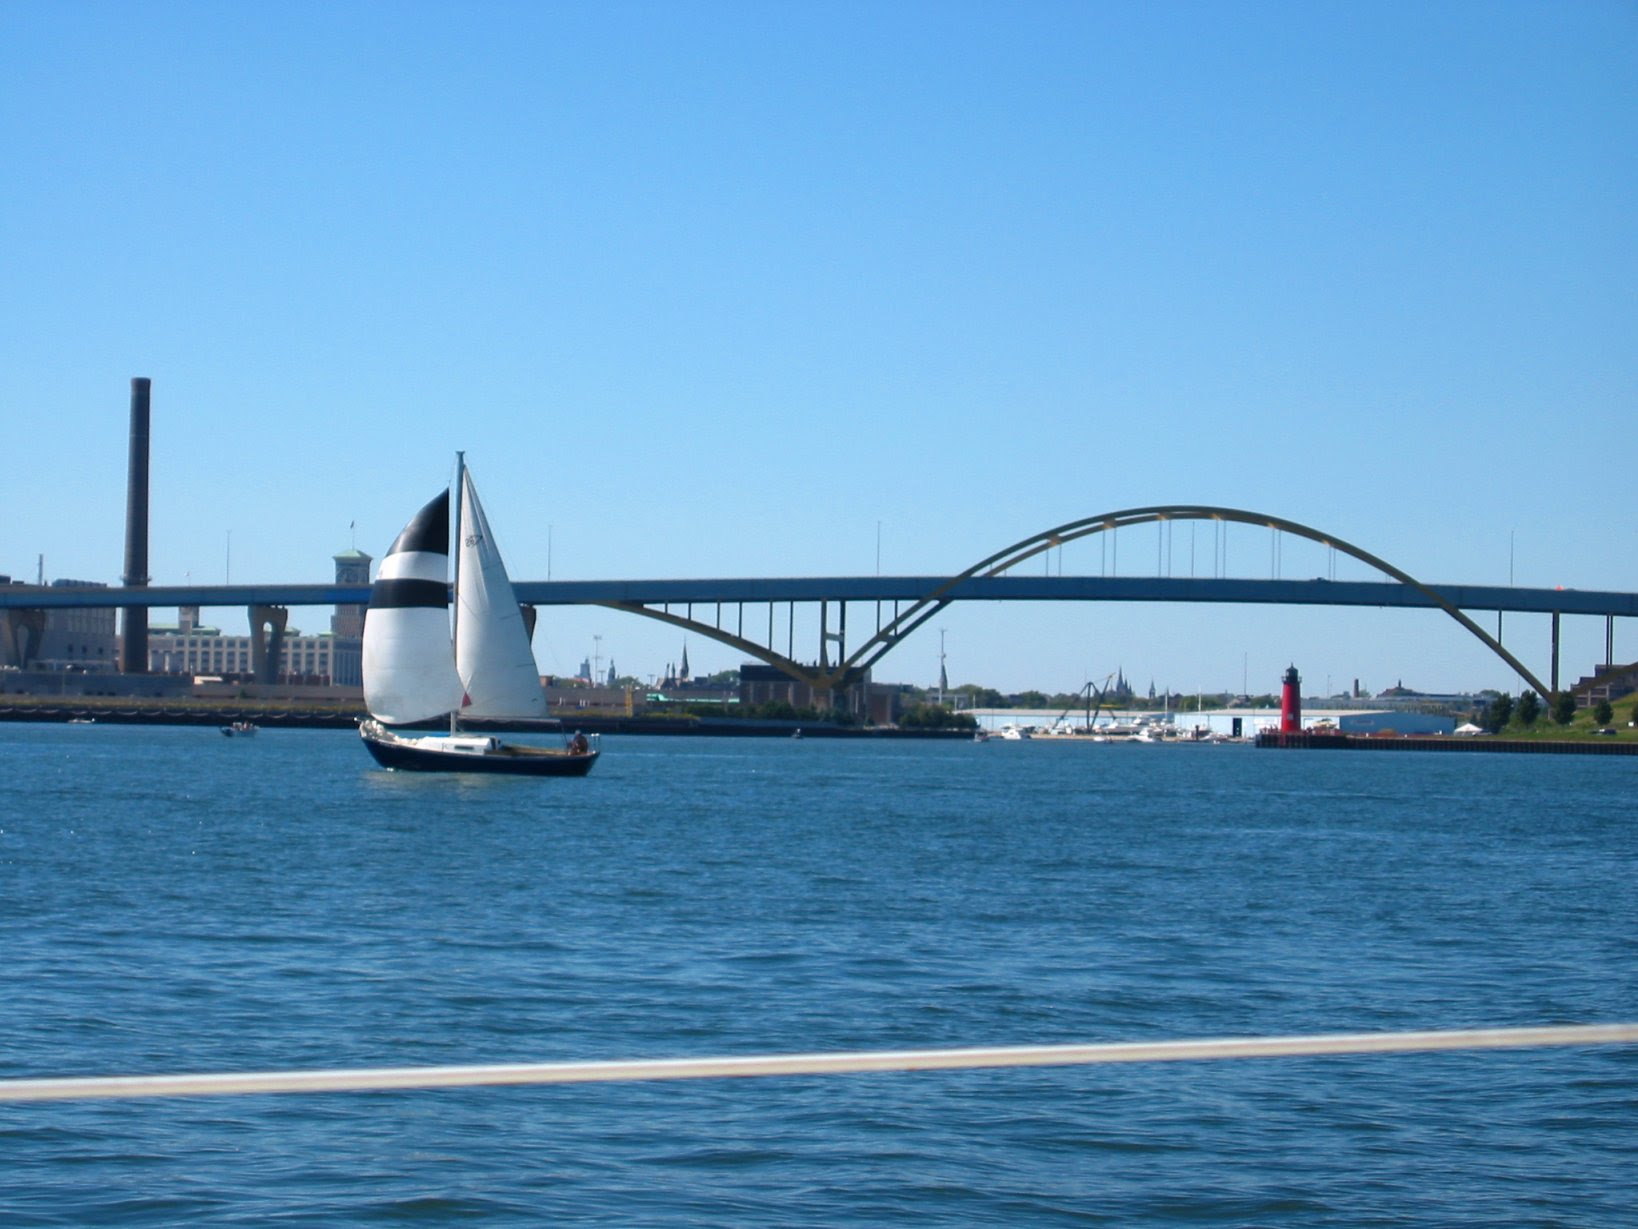 Milwaukee McKinley Marina - Hoan Bridge and a Sail Boat - soul-amp.com